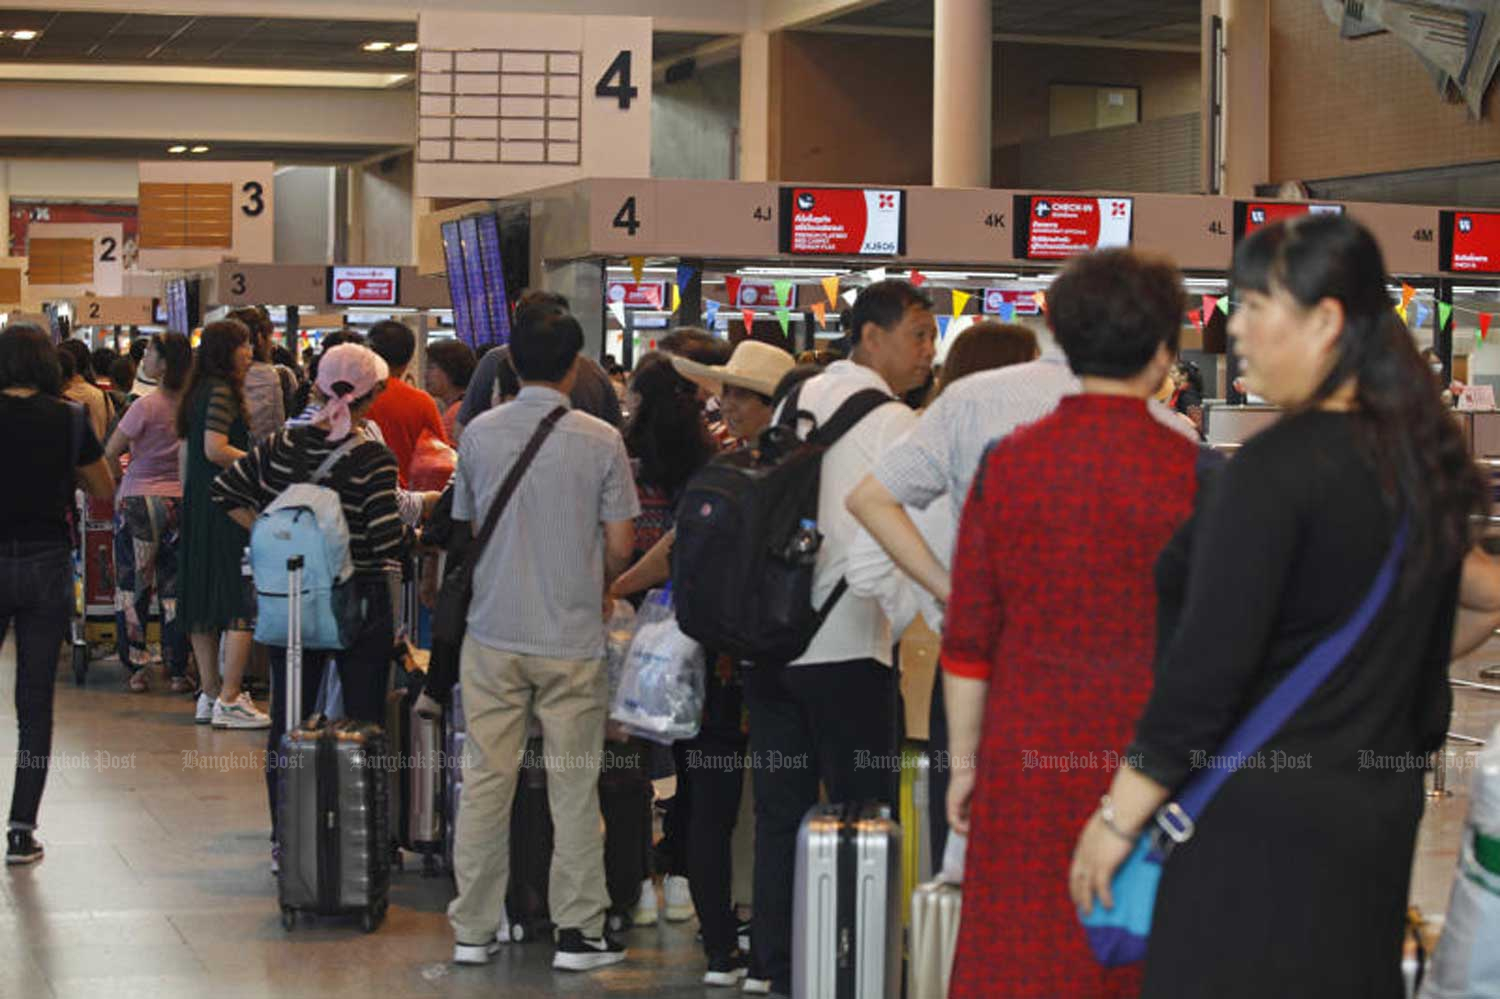 Passengers crowd Don Mueang airport, Bangkok, during the Songkran festival in April. (File photo by Varuth Hirunyatheb)